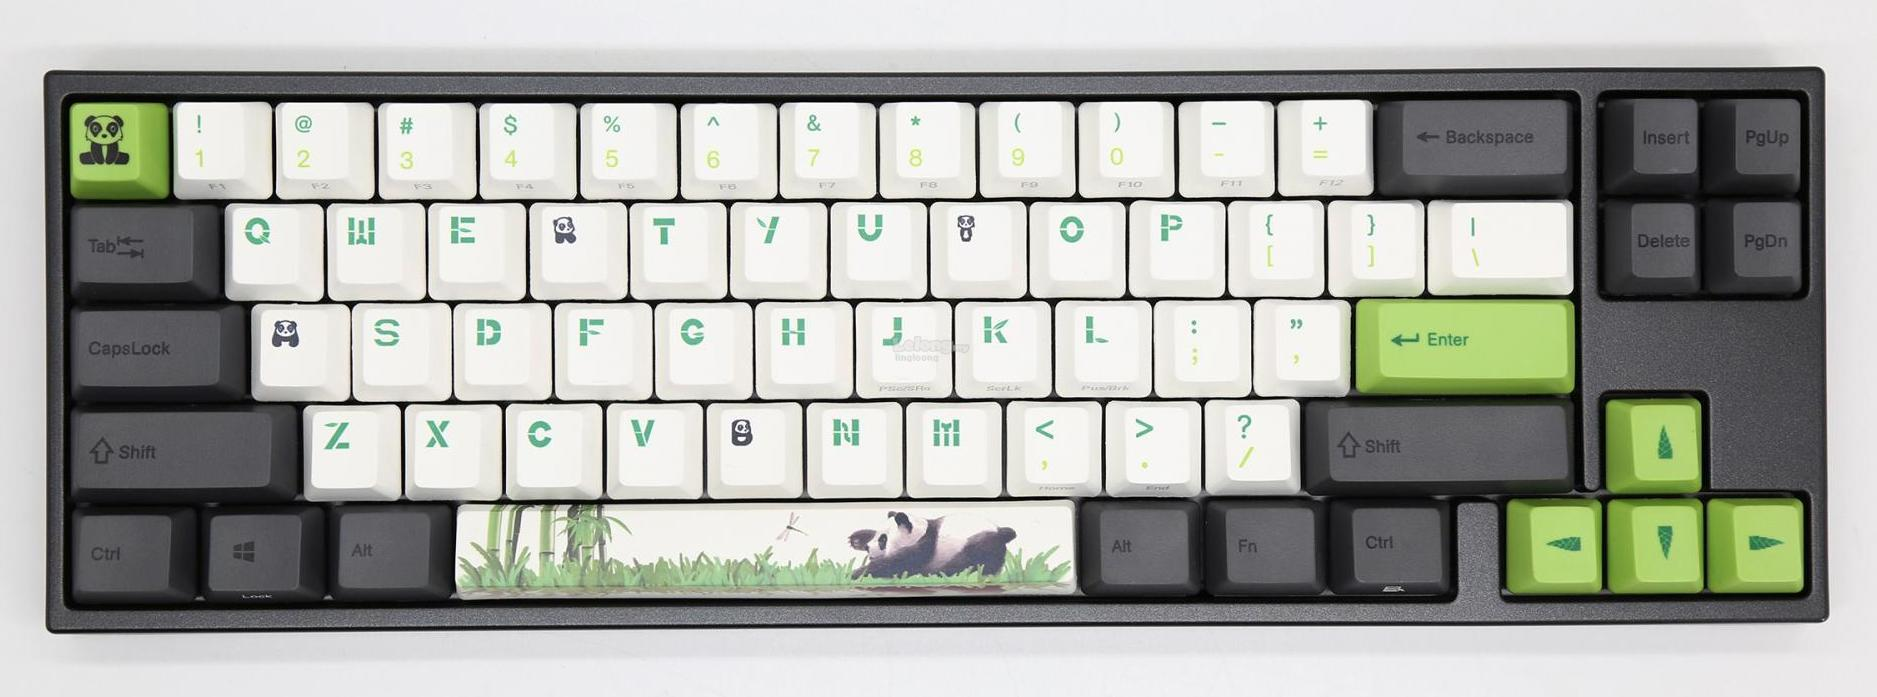 # DUCKY Miya Pro Panda 65% Mechanical Keyboard # 4 Cherry MX Switch